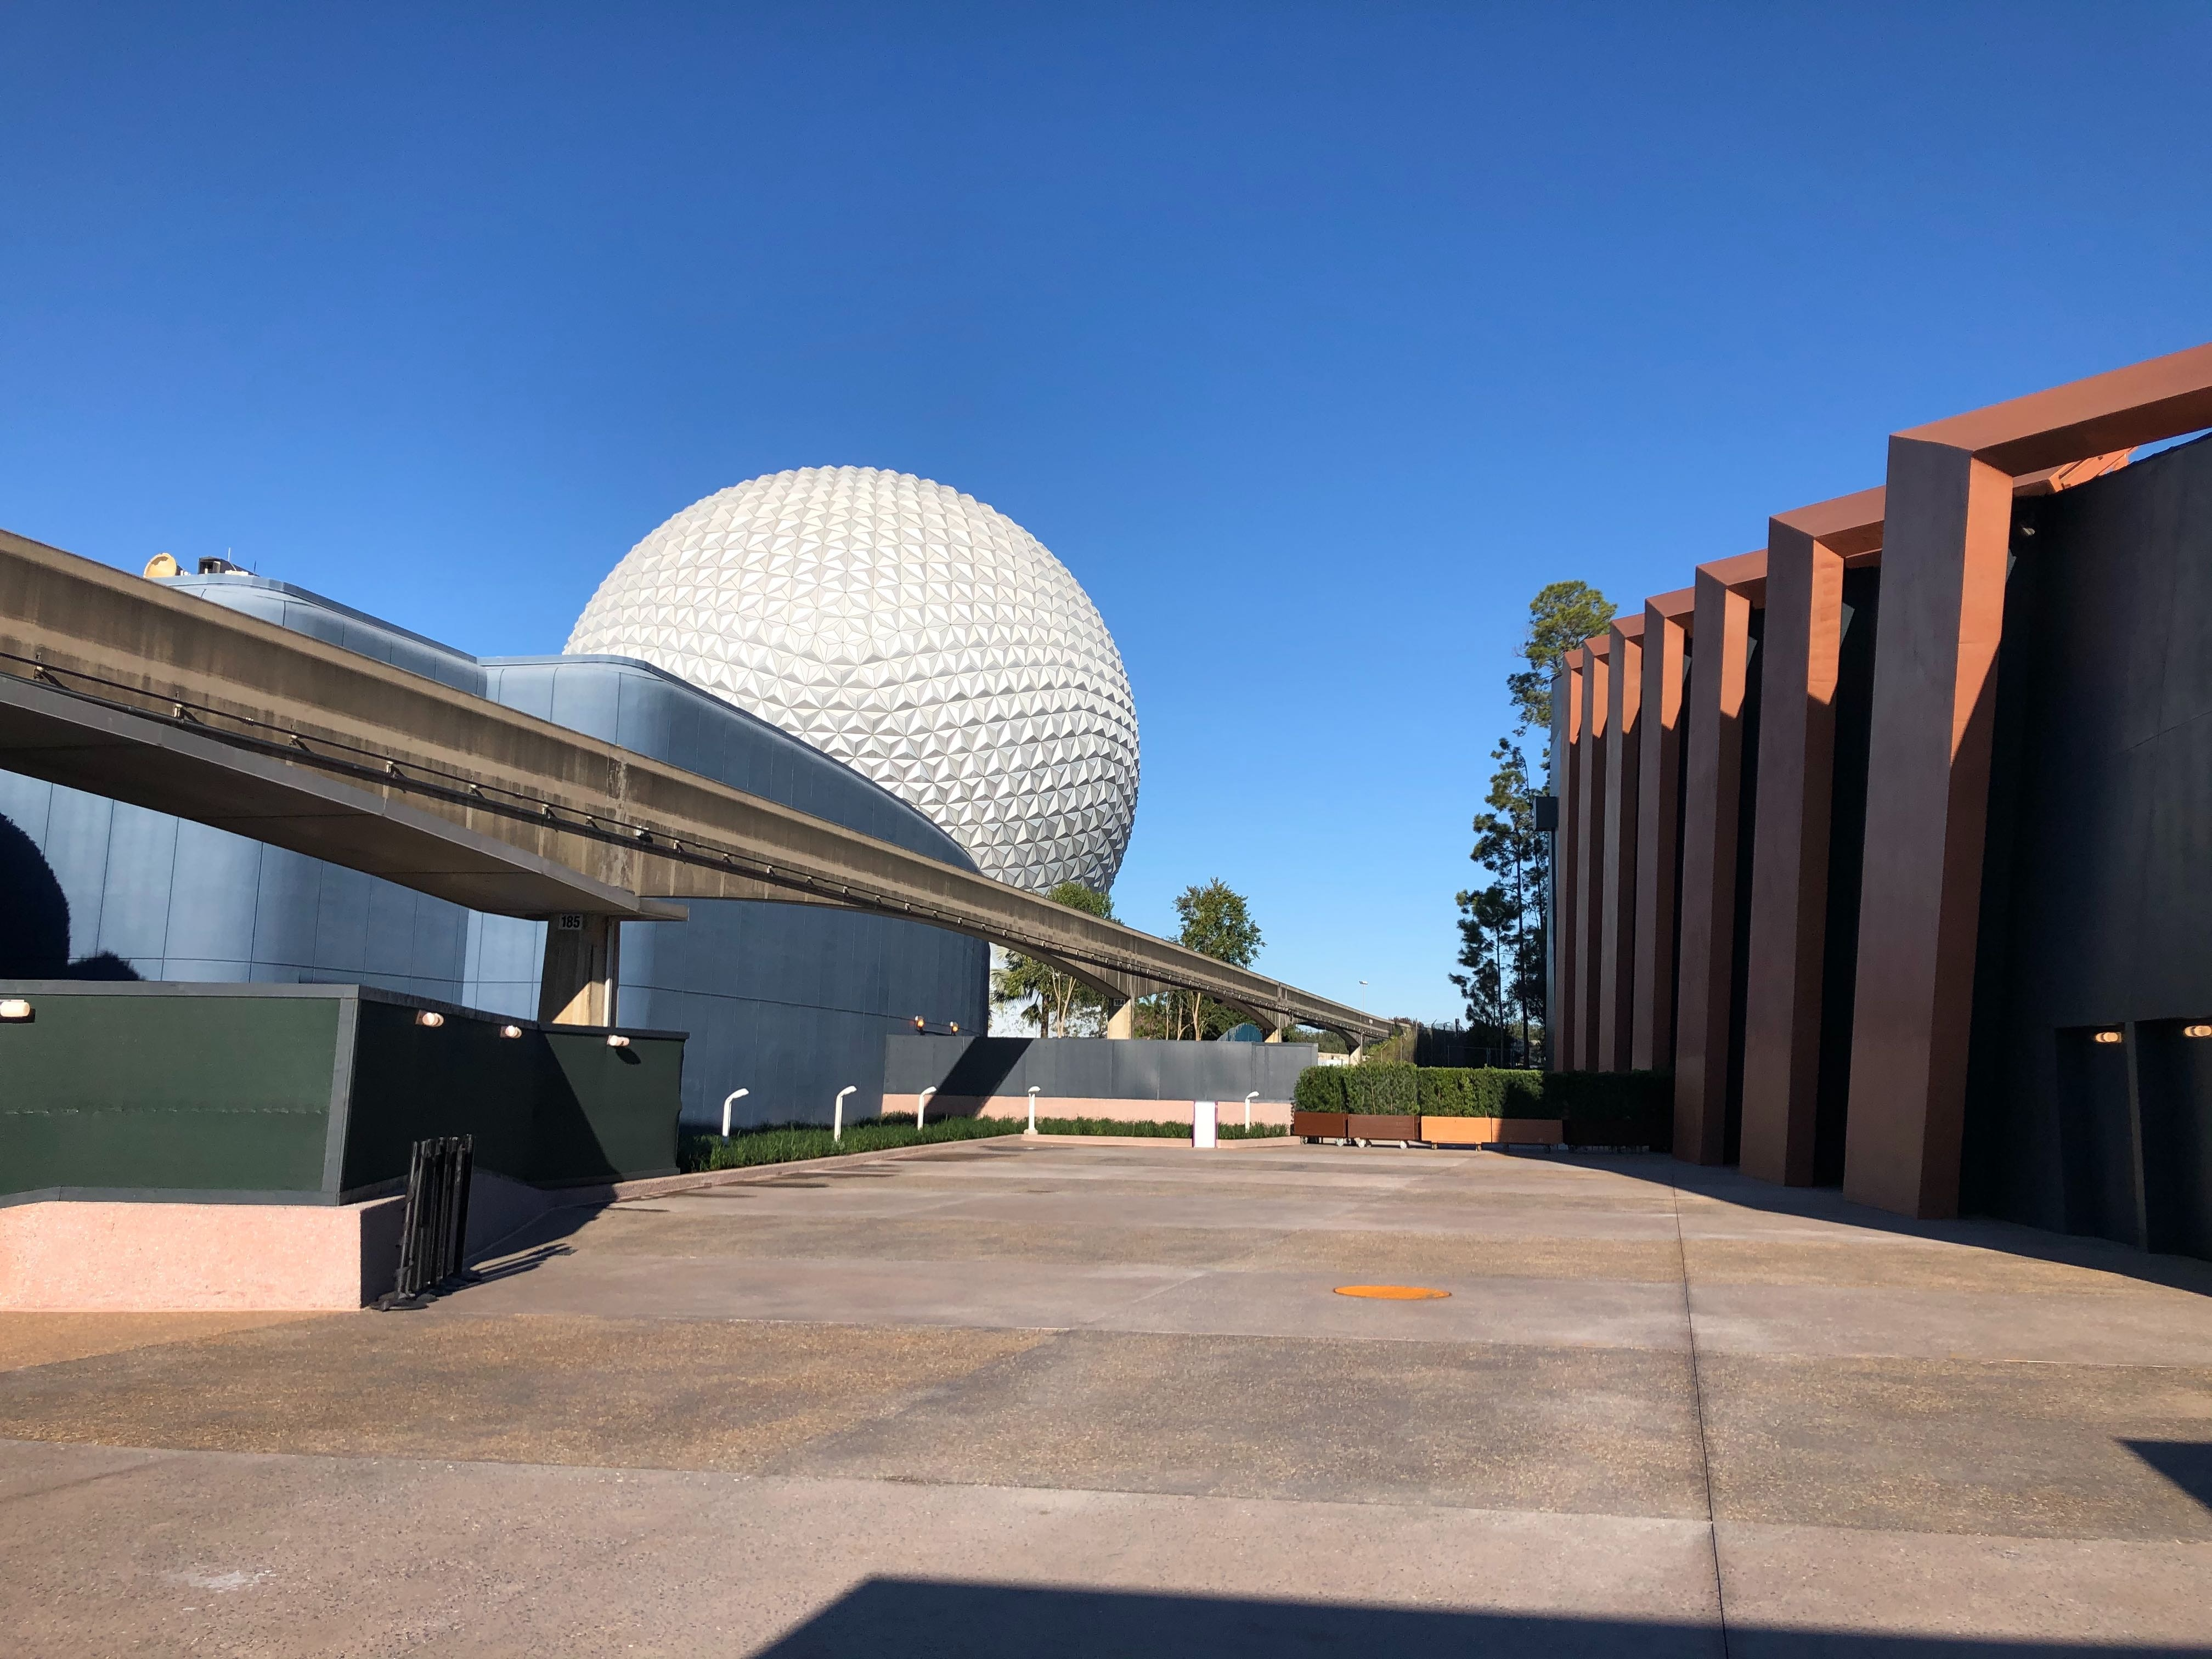 Epcot bypass